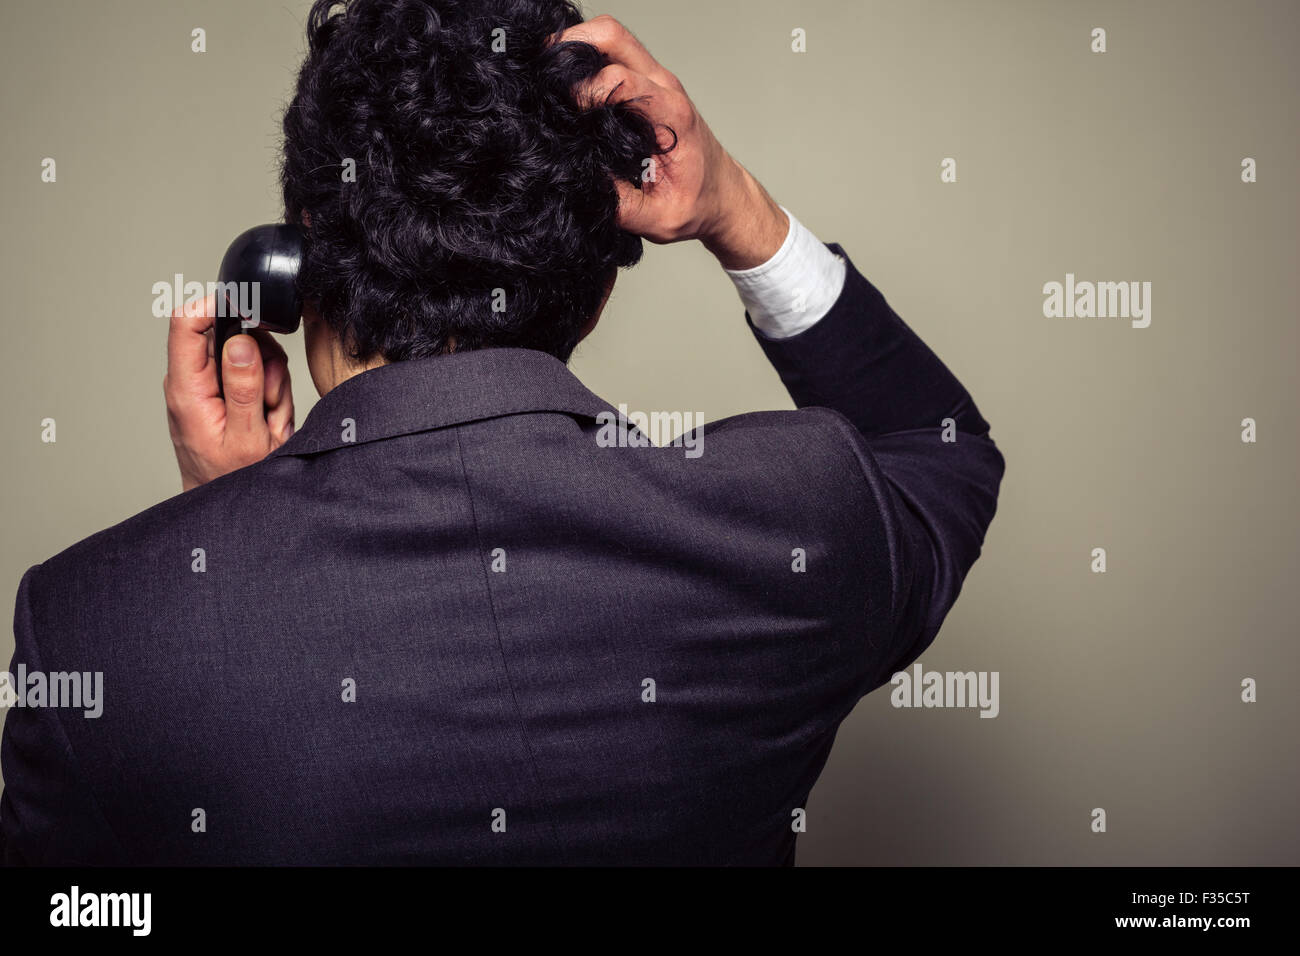 Rear view of a confused businessman on the phone scratching his head - Stock Image